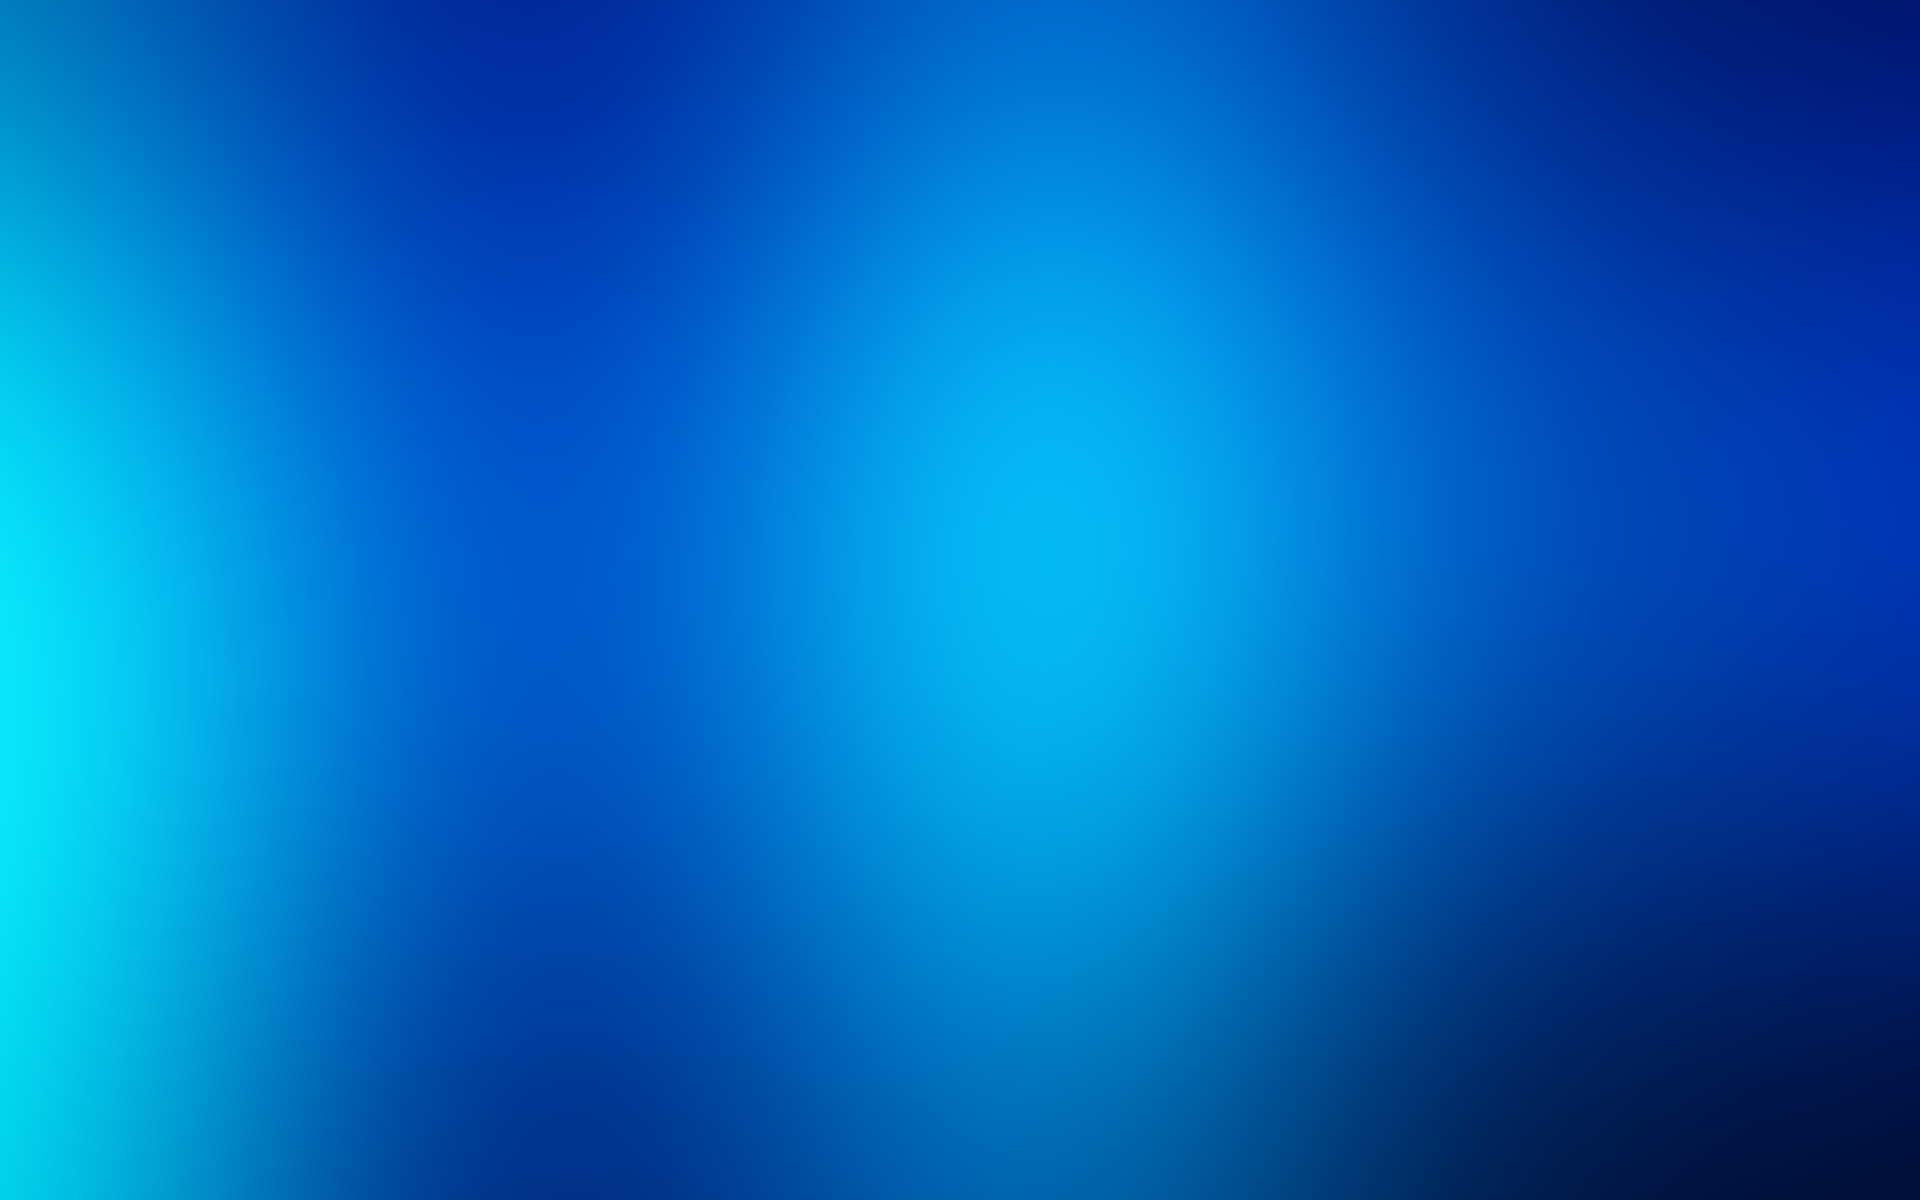 10+ Best For High Resolution Blue Background Hd Png